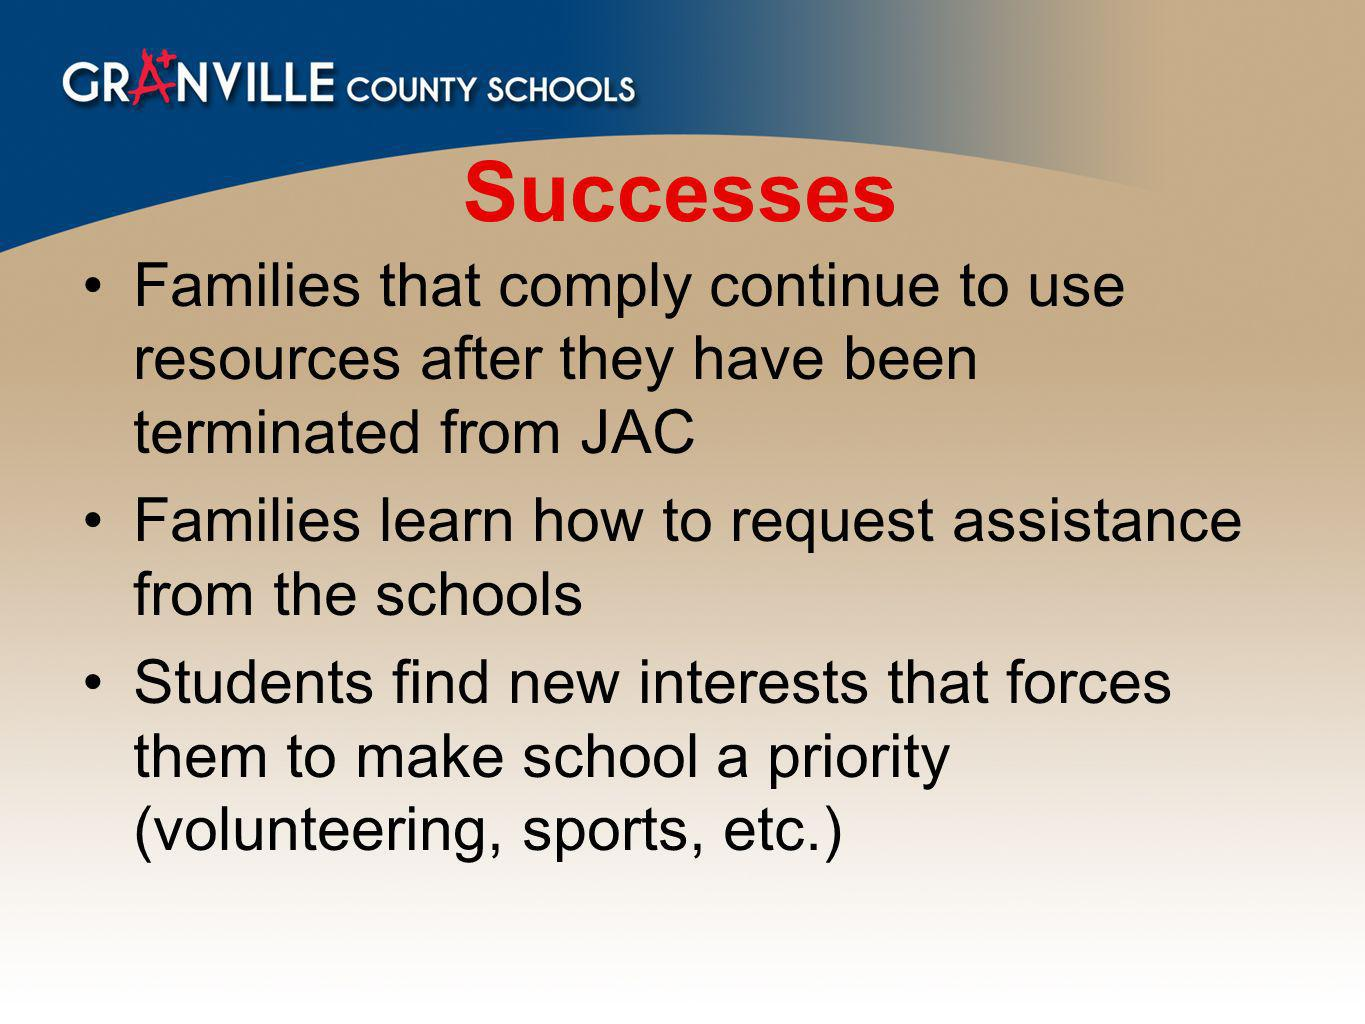 Successes Families that comply continue to use resources after they have been terminated from JAC Families learn how to request assistance from the schools Students find new interests that forces them to make school a priority (volunteering, sports, etc.)